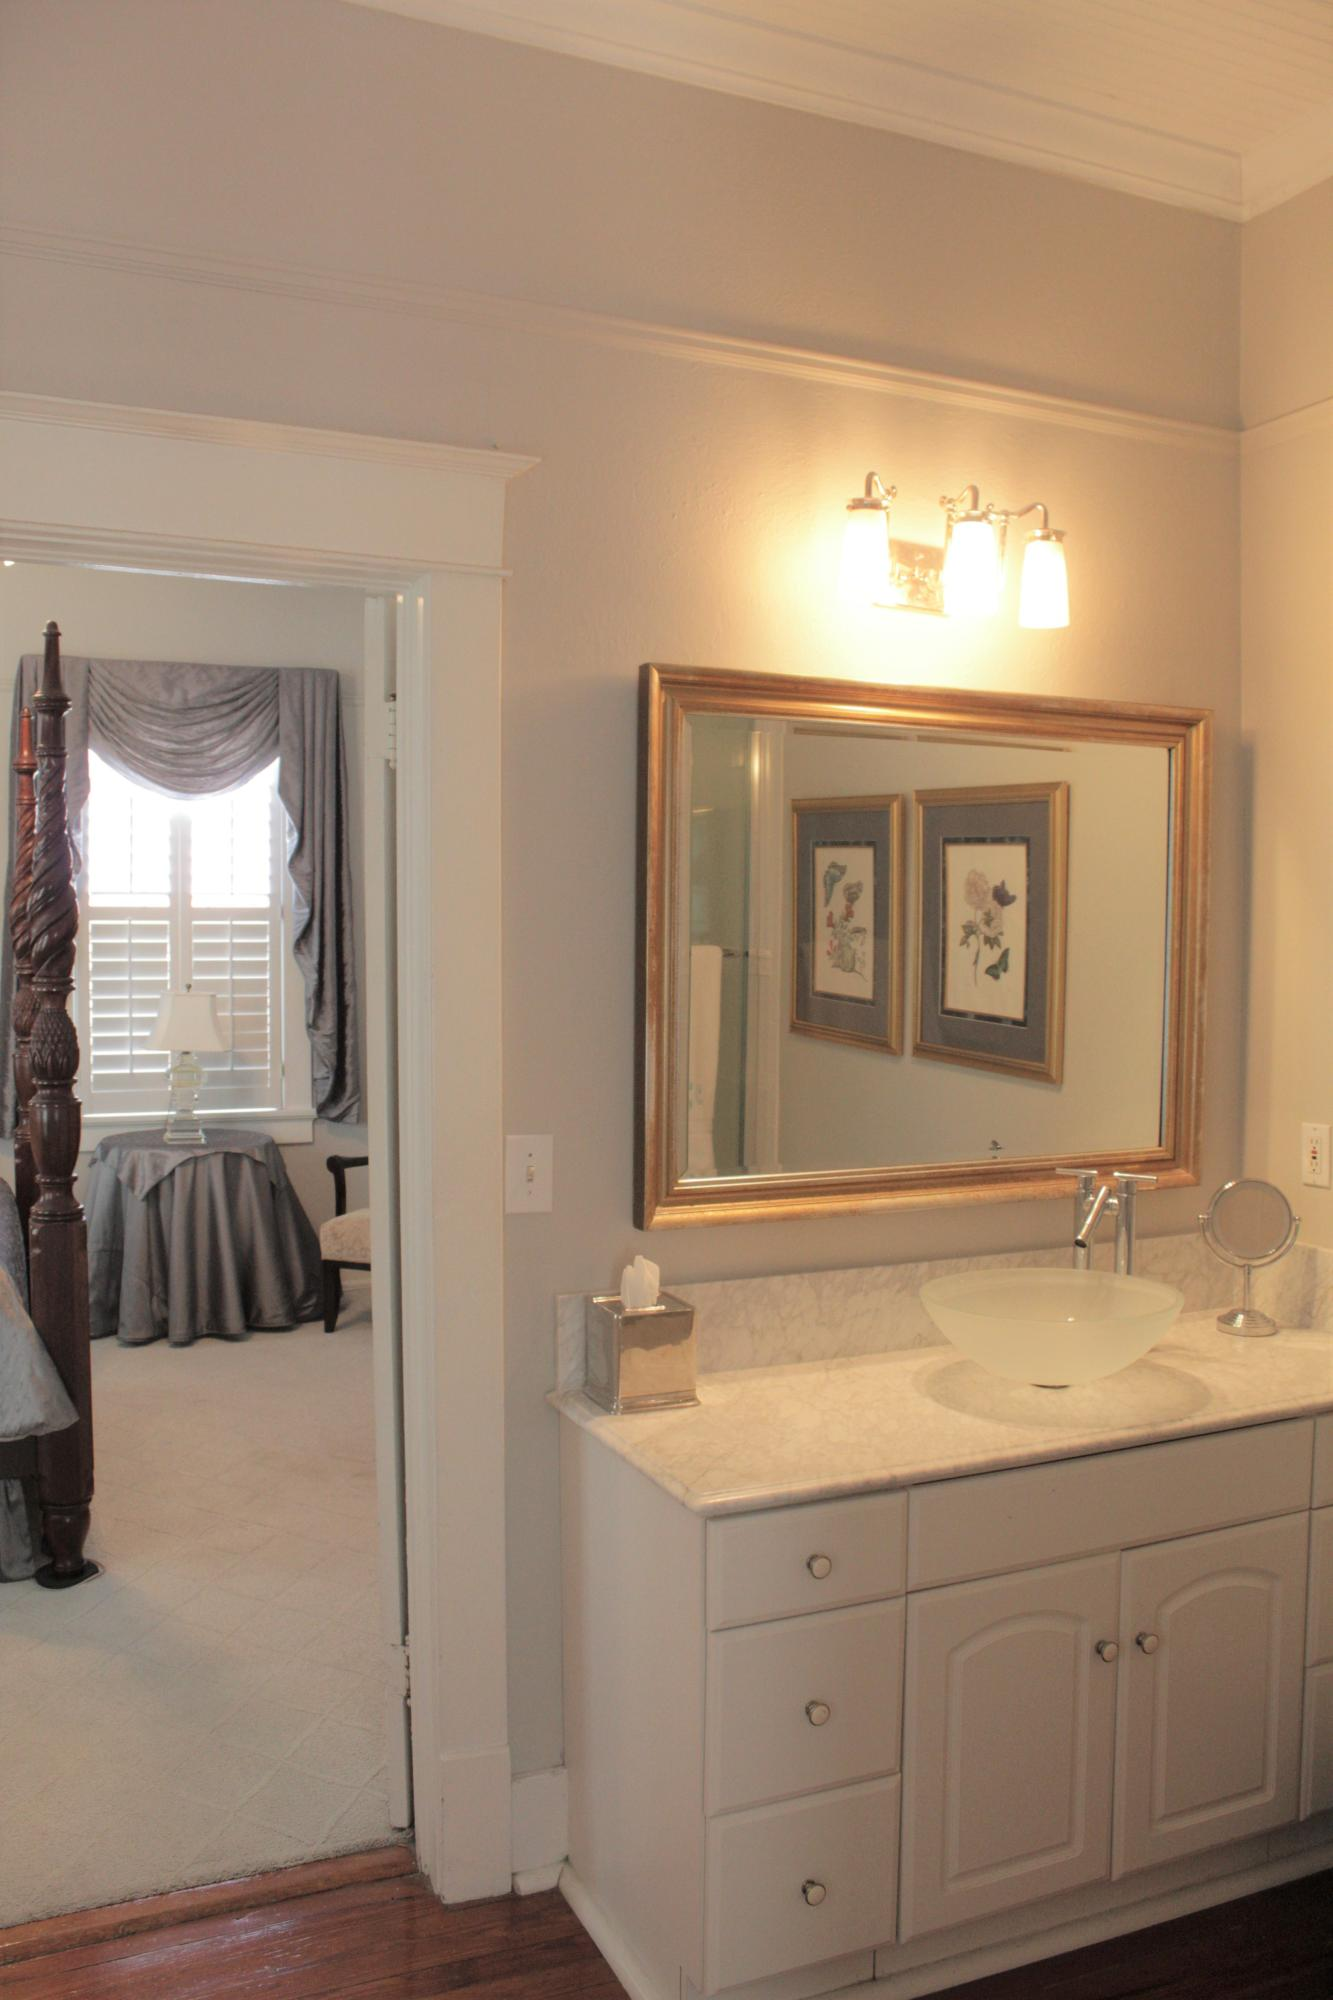 South of Broad Homes For Sale - 21 Limehouse, Charleston, SC - 40